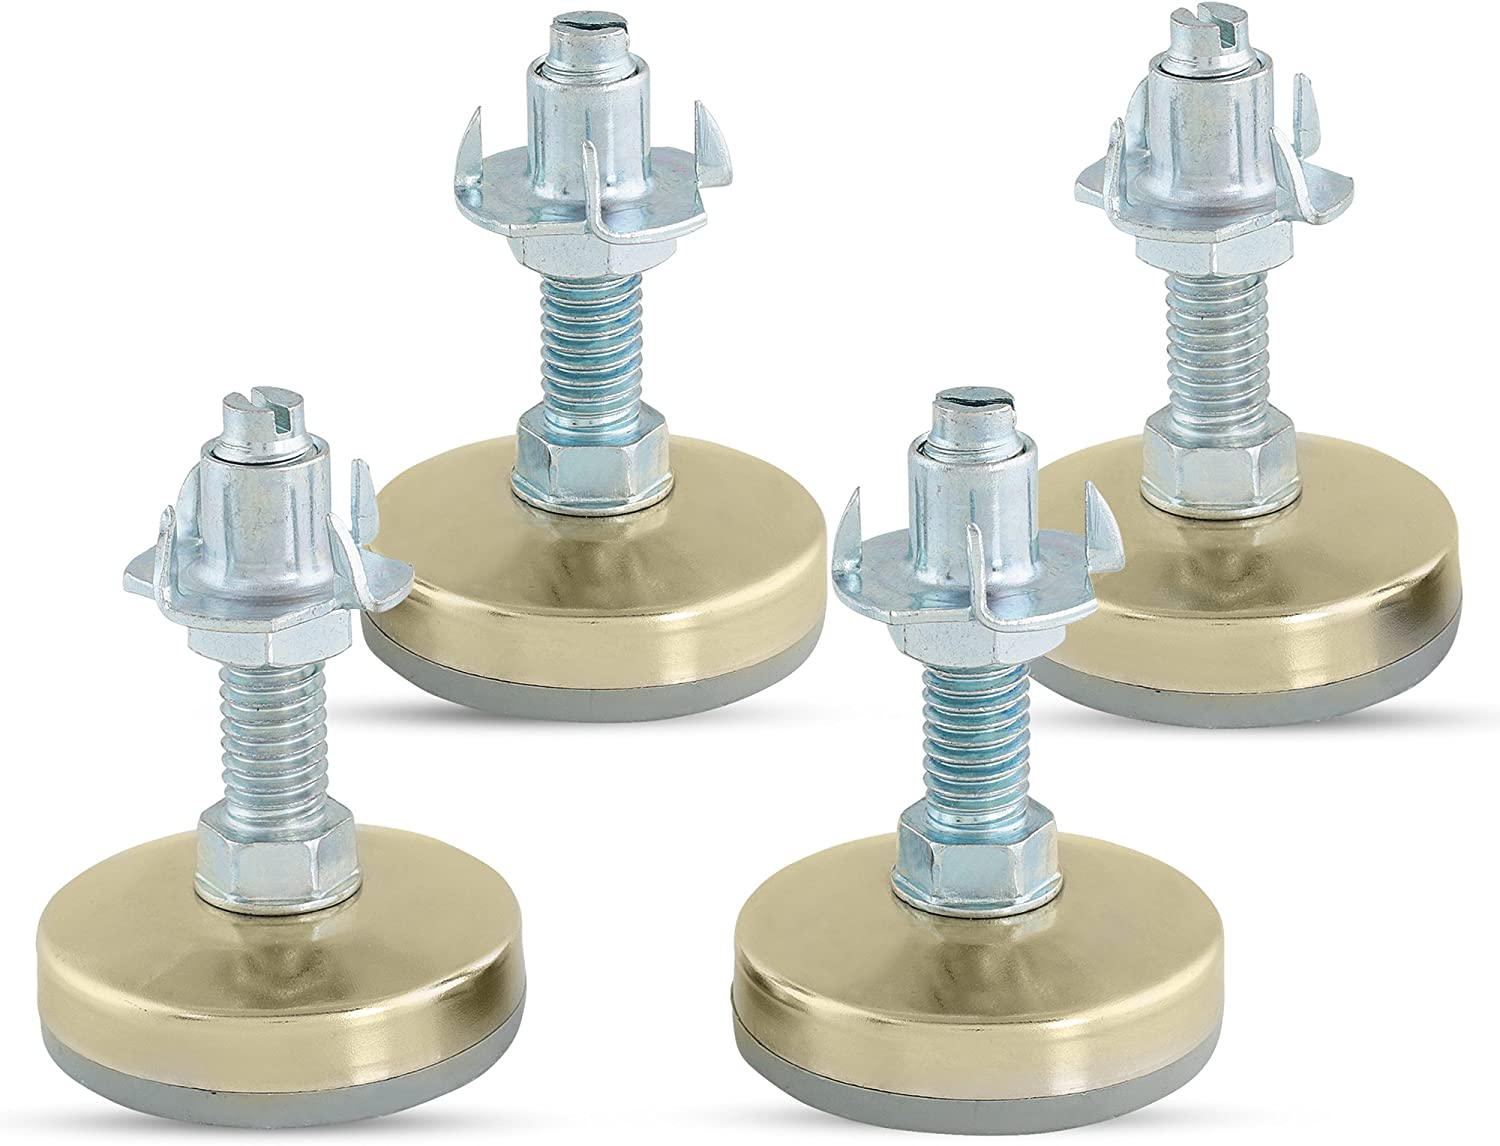 Heavy Duty Furniture Leveler Tee Nut Kit – Set of 4-3/8-16 Non-Skid Leg Levelers for Cabinets or Tables to Adjust Height of The Legs or Feet Jam Nuts to Stabilize Each Foot (Kit with 4 Prong T-Nuts)